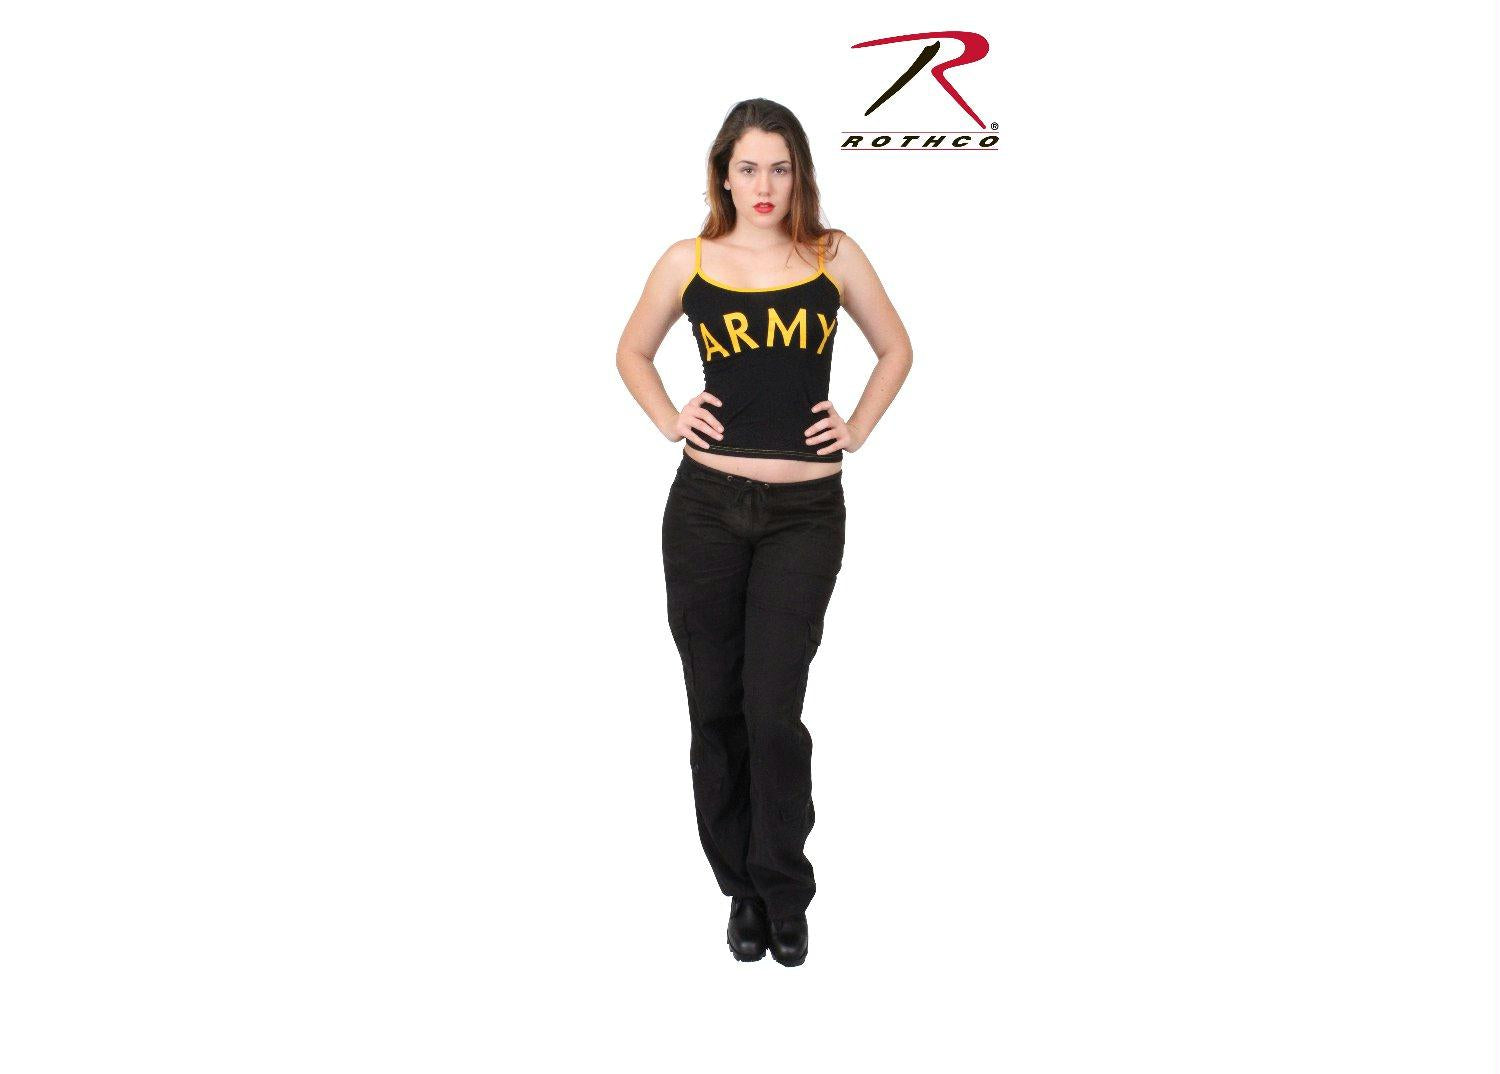 Rothco Army Womens Tank Top - XS